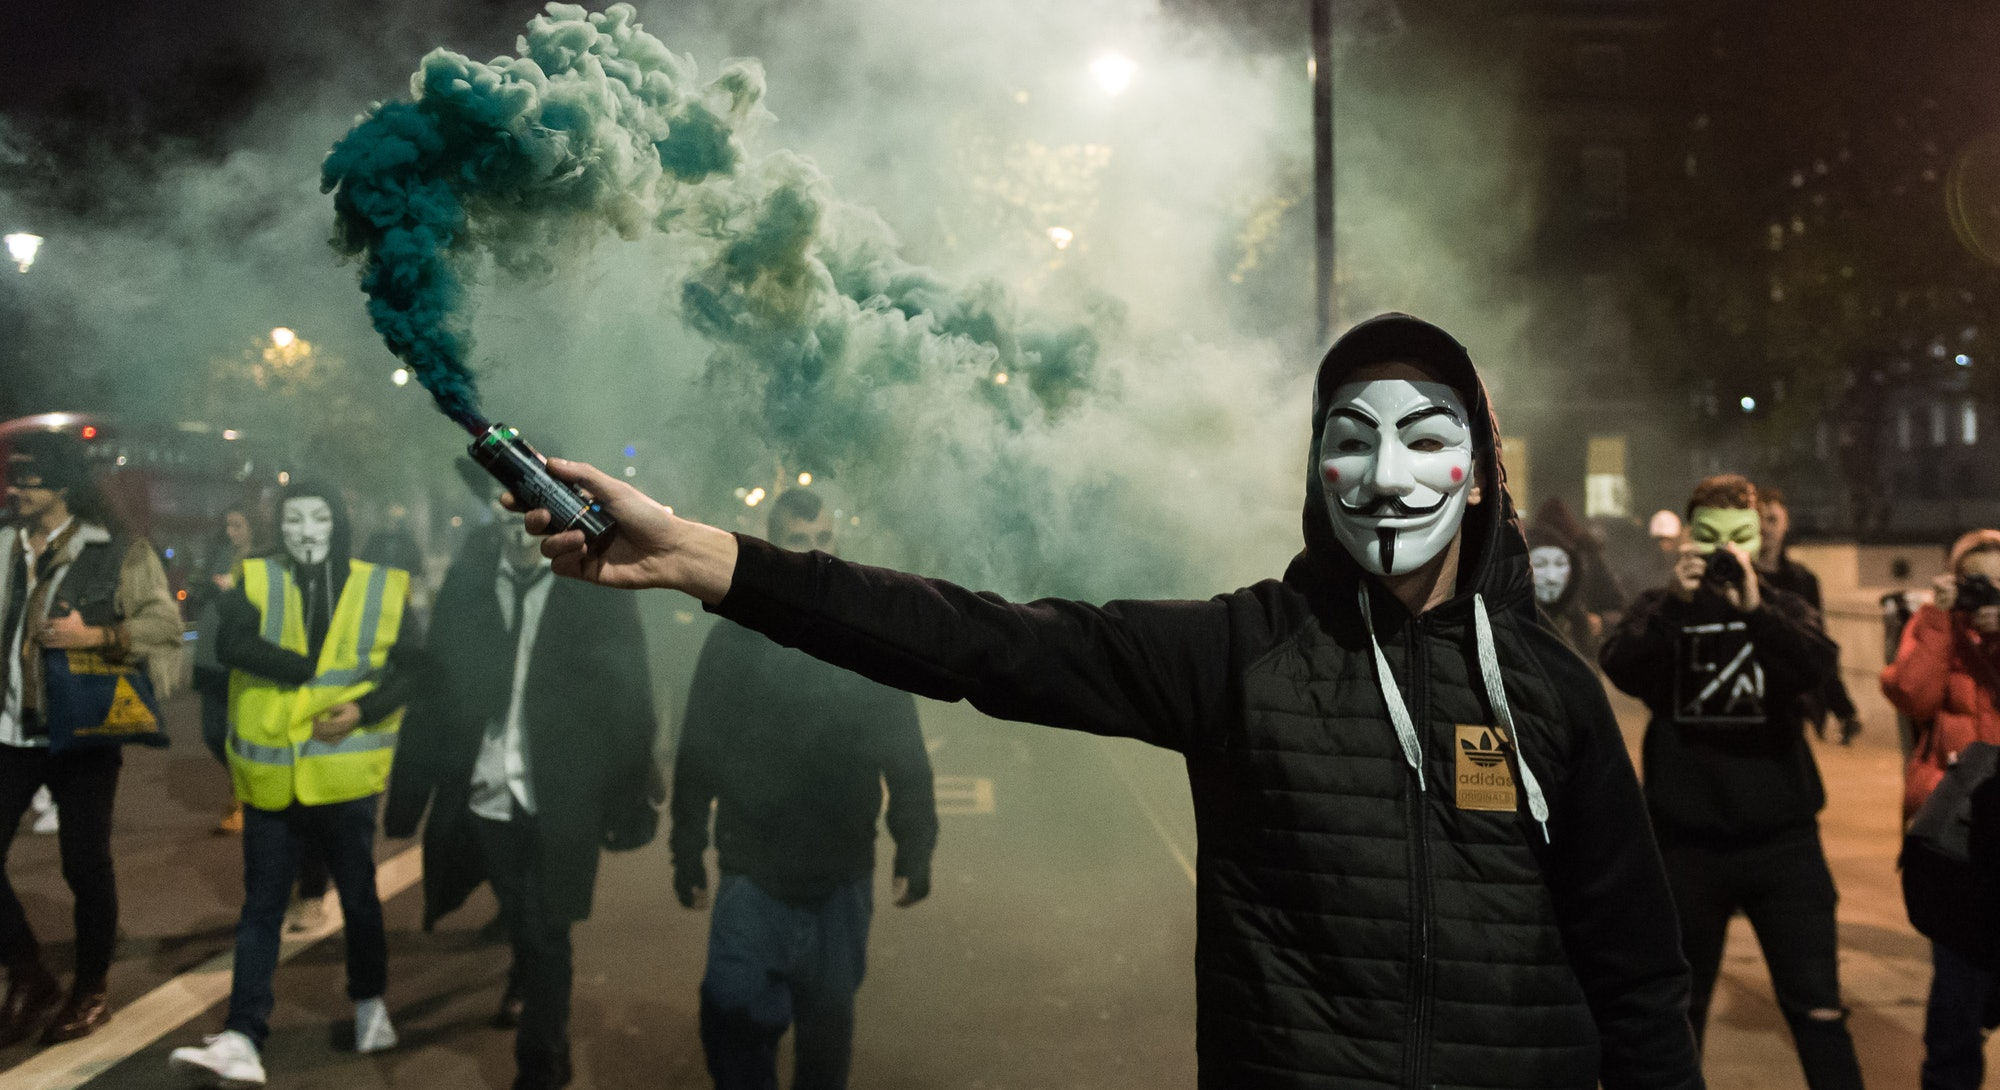 LONDON, UNITED KINGDOM - NOVEMBER 5: Demonstrator wearing Guy Fawkes mask sets of a smoke bomb as hundreds take part in the annual 'Million Mask March' on Bonfire Night. The event is a part of a global anti-establishment and anti-capitalist protest against issues such as austerity, infringement of human rights, surveillance, politics and economics. November 5, 2018 in London, England. (Photo credit should read Wiktor Szymanowicz / Barcroft Media via Getty Images)